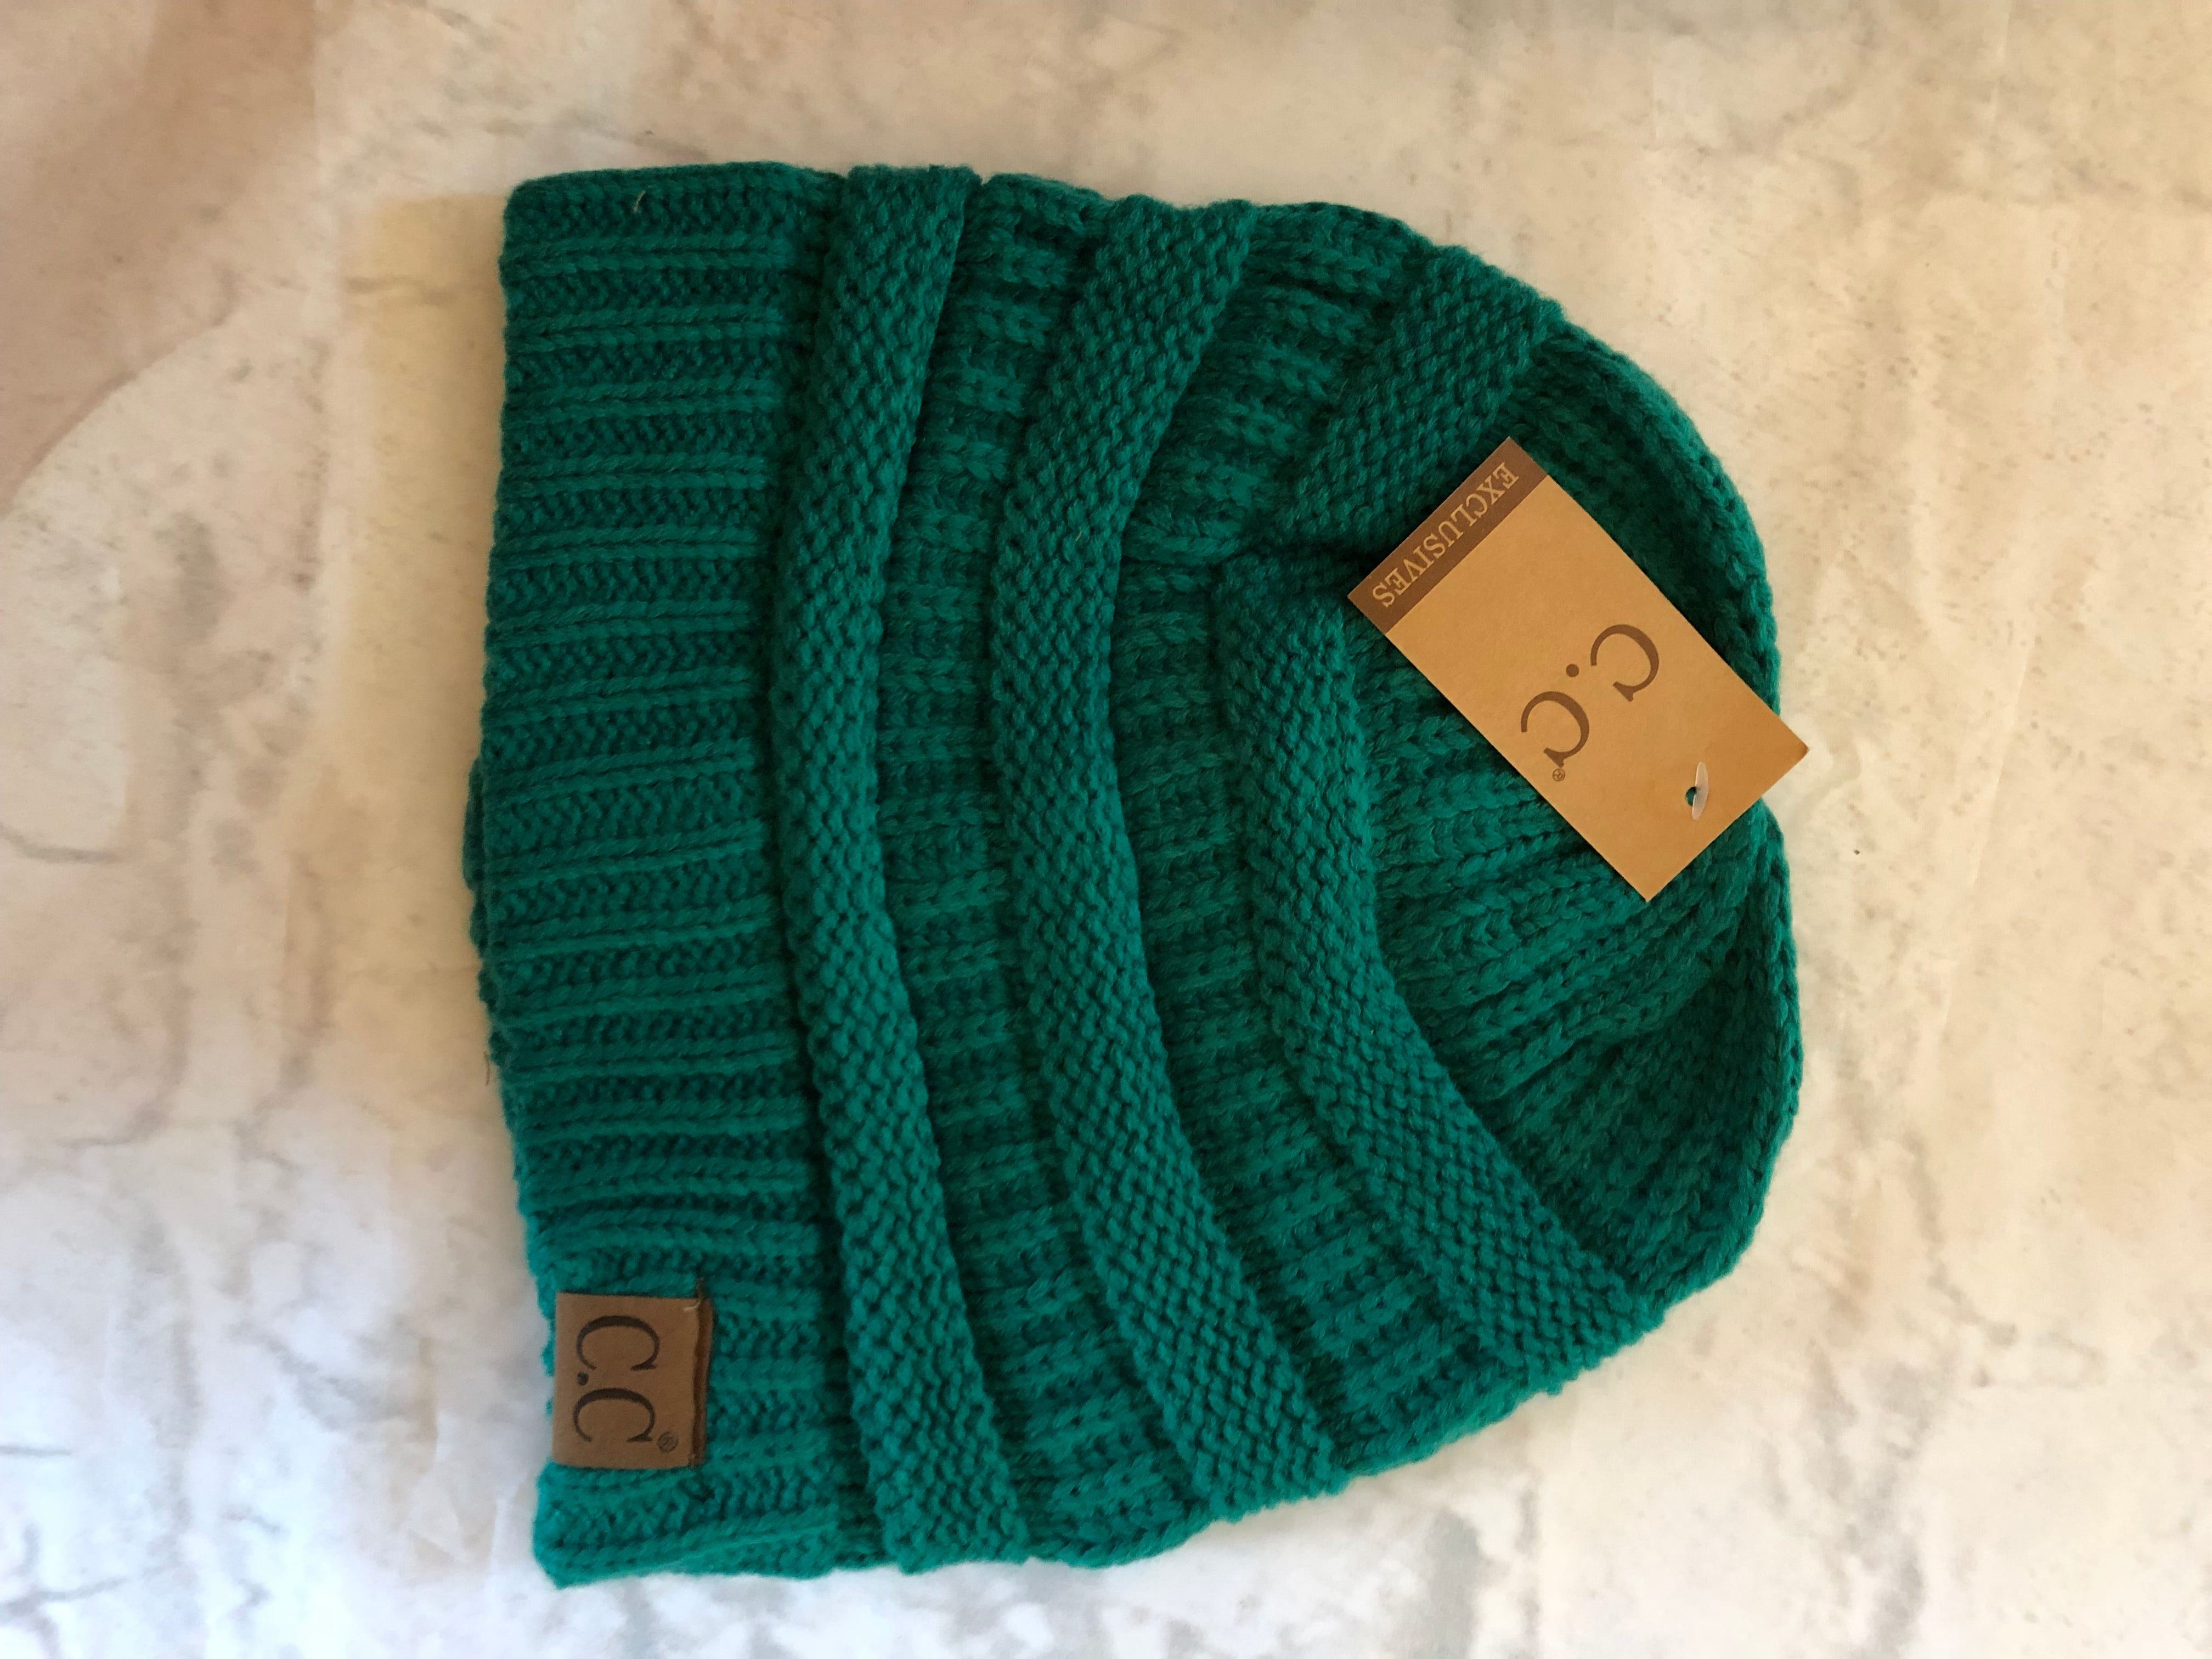 CC Brand Beanie - Blue/Green Family